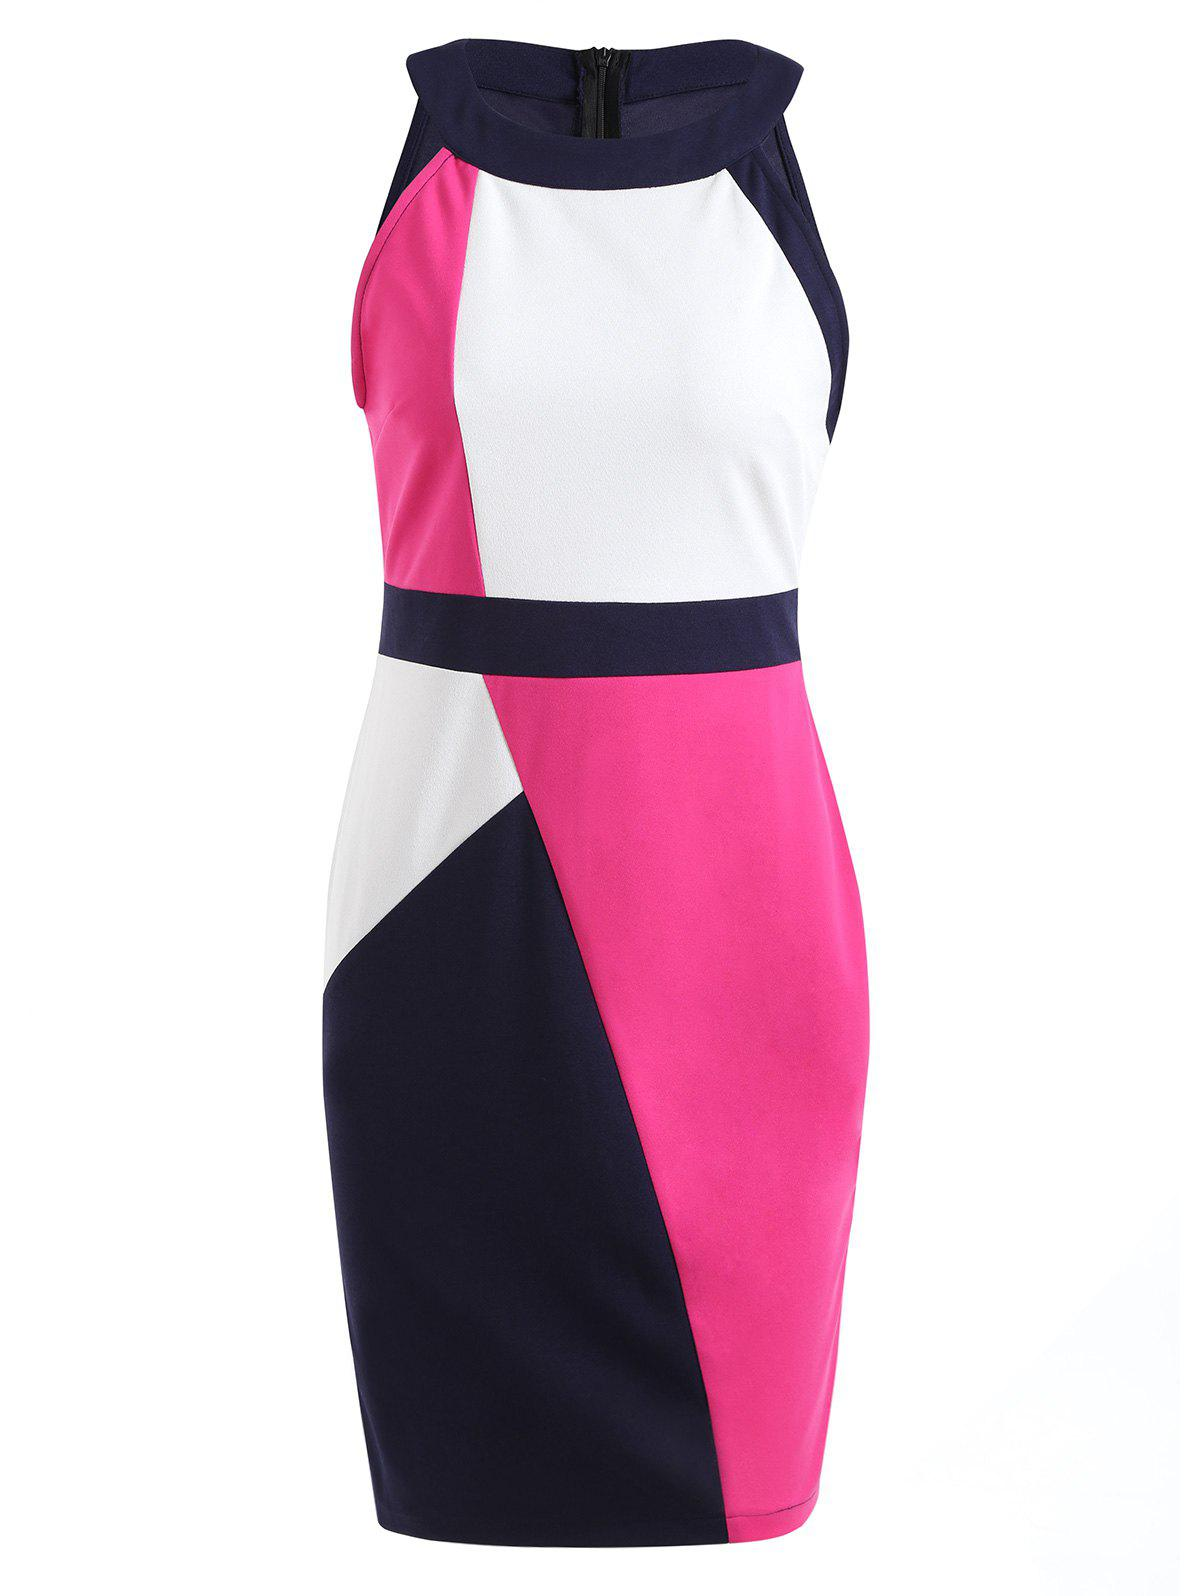 Color Block Sleeveless Sheath Dress - multicolor A L